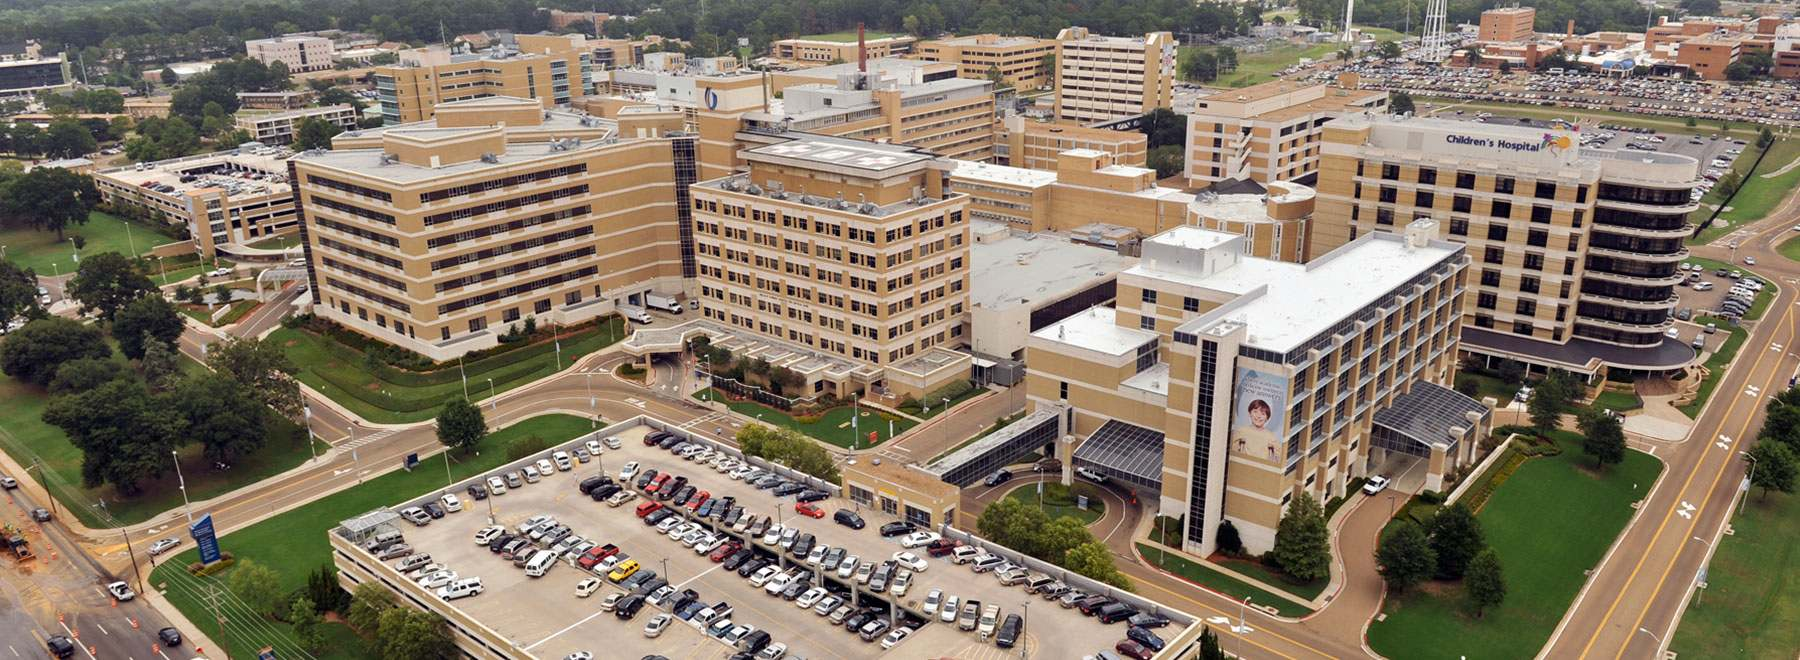 Aerial photograph of UMMC campus